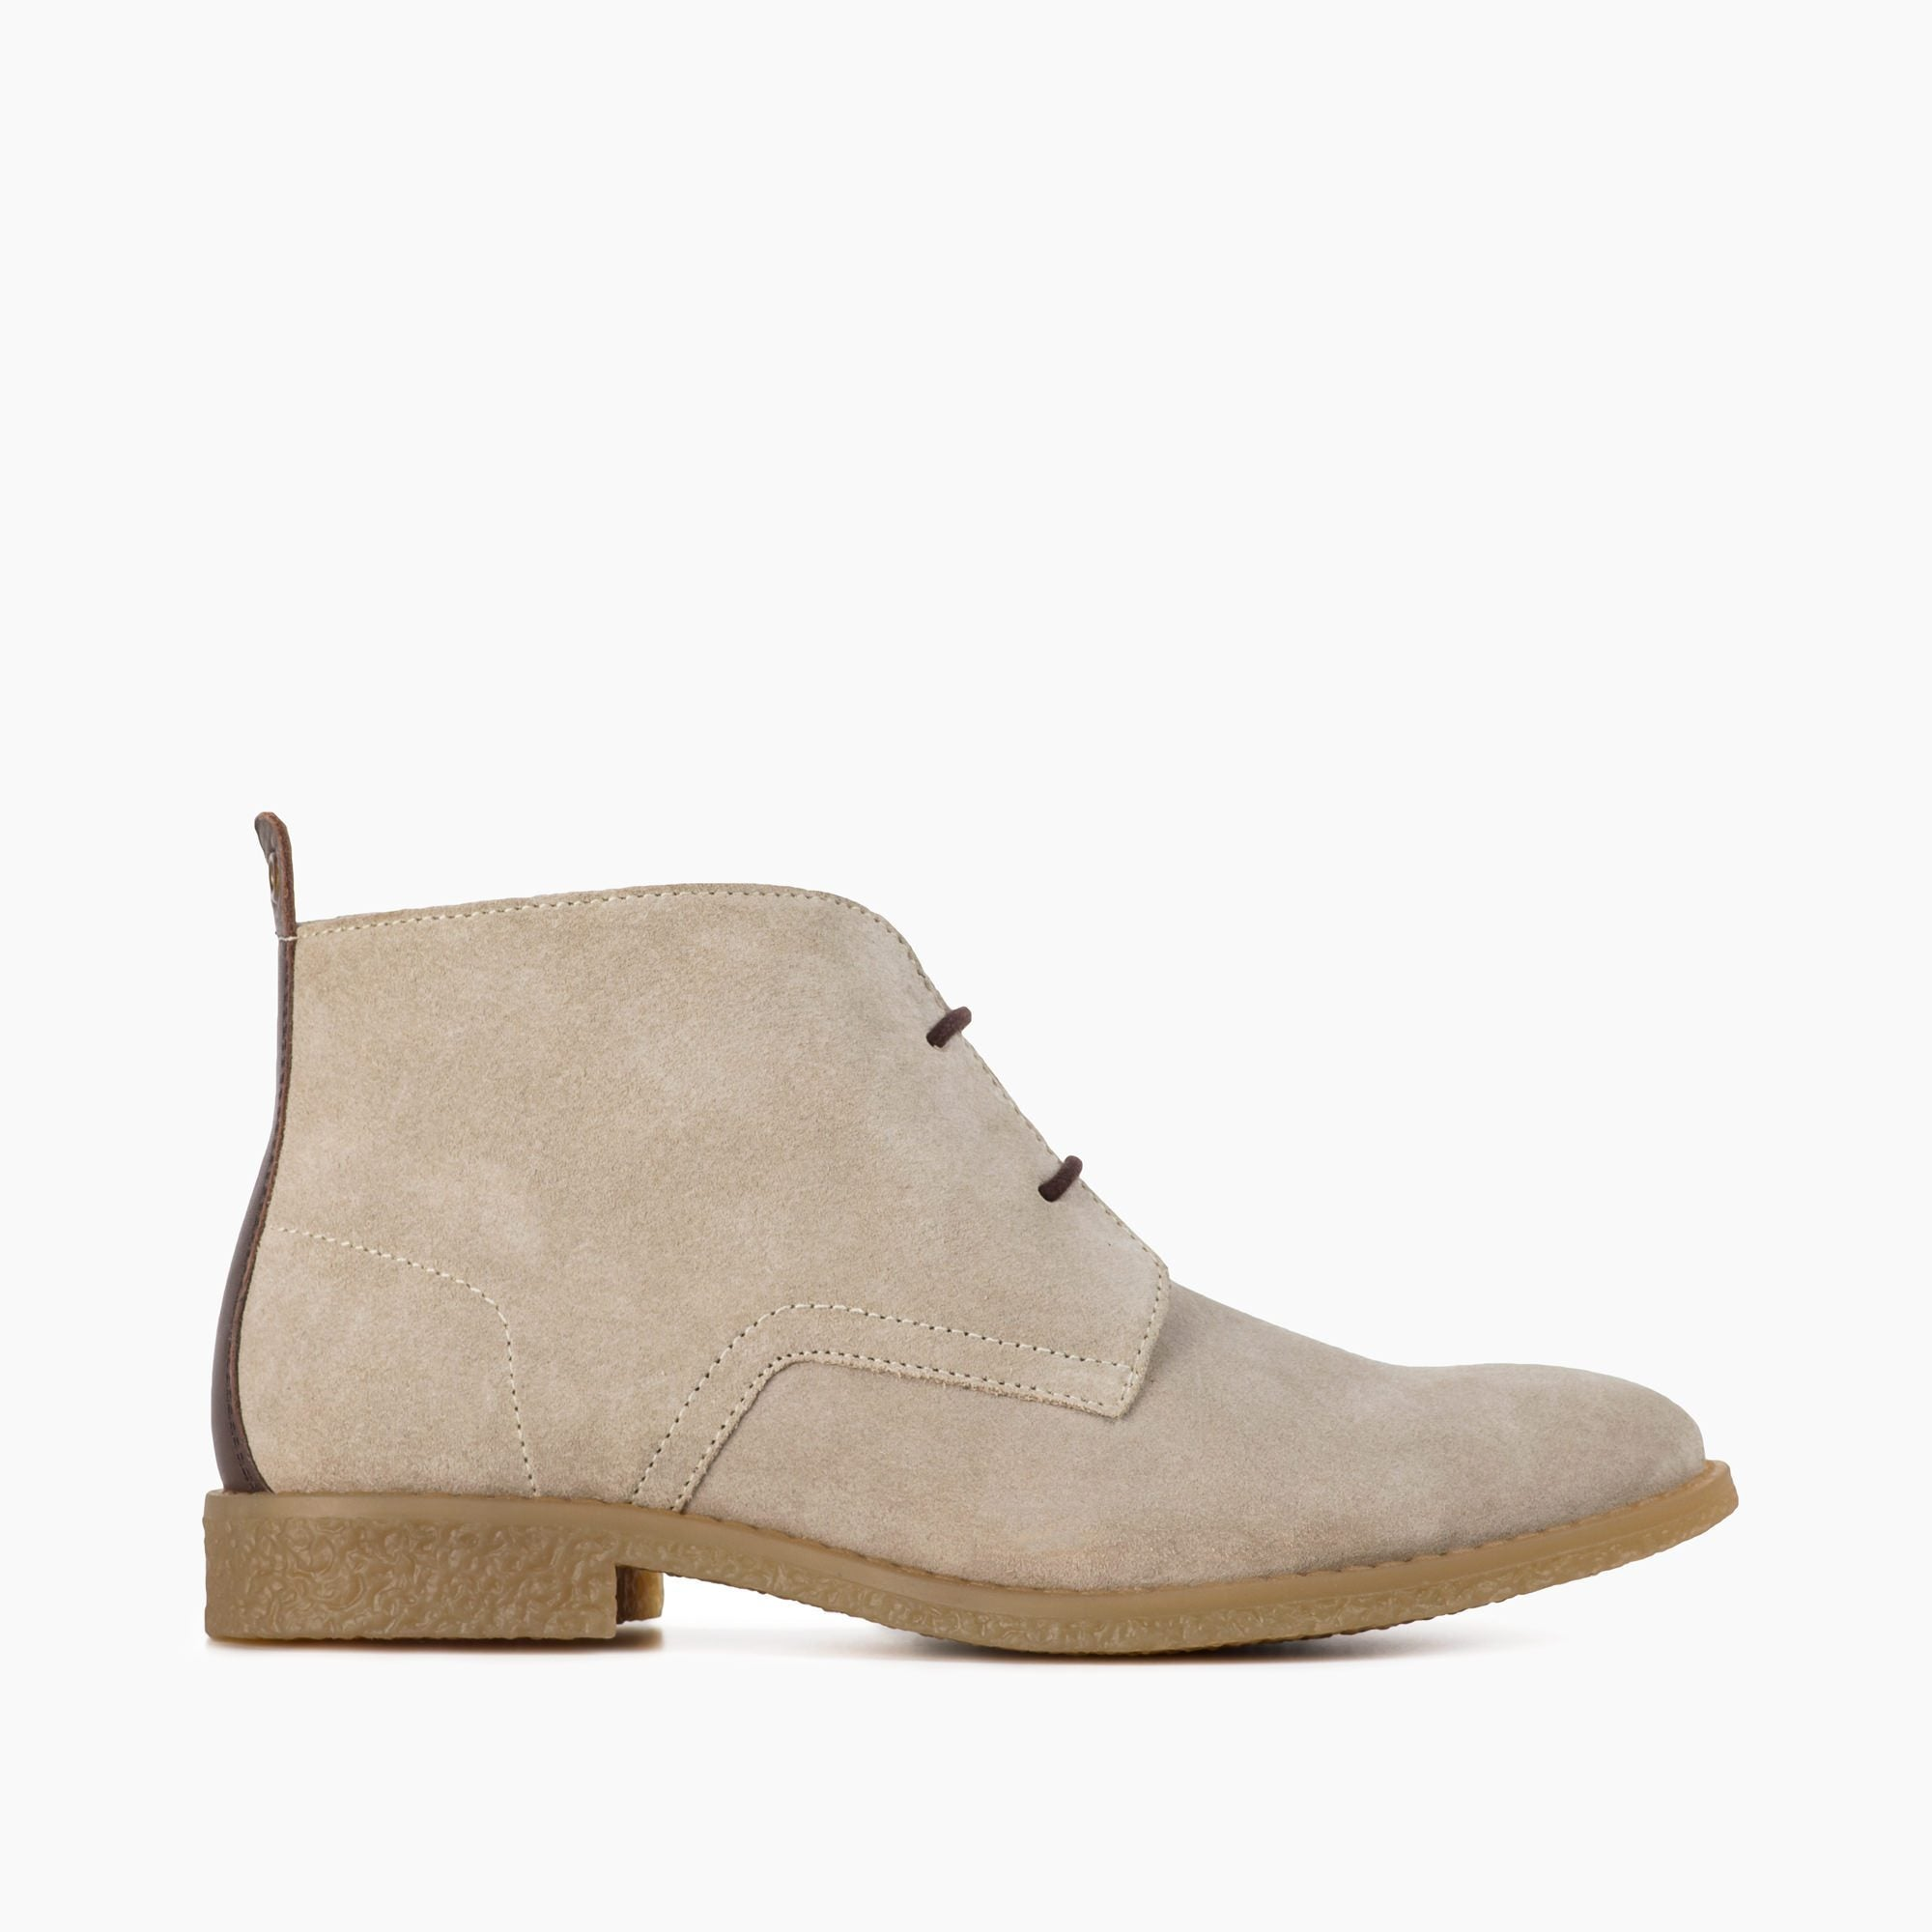 ISLA LIGHT TAN SUEDE CHUKKA BOOT